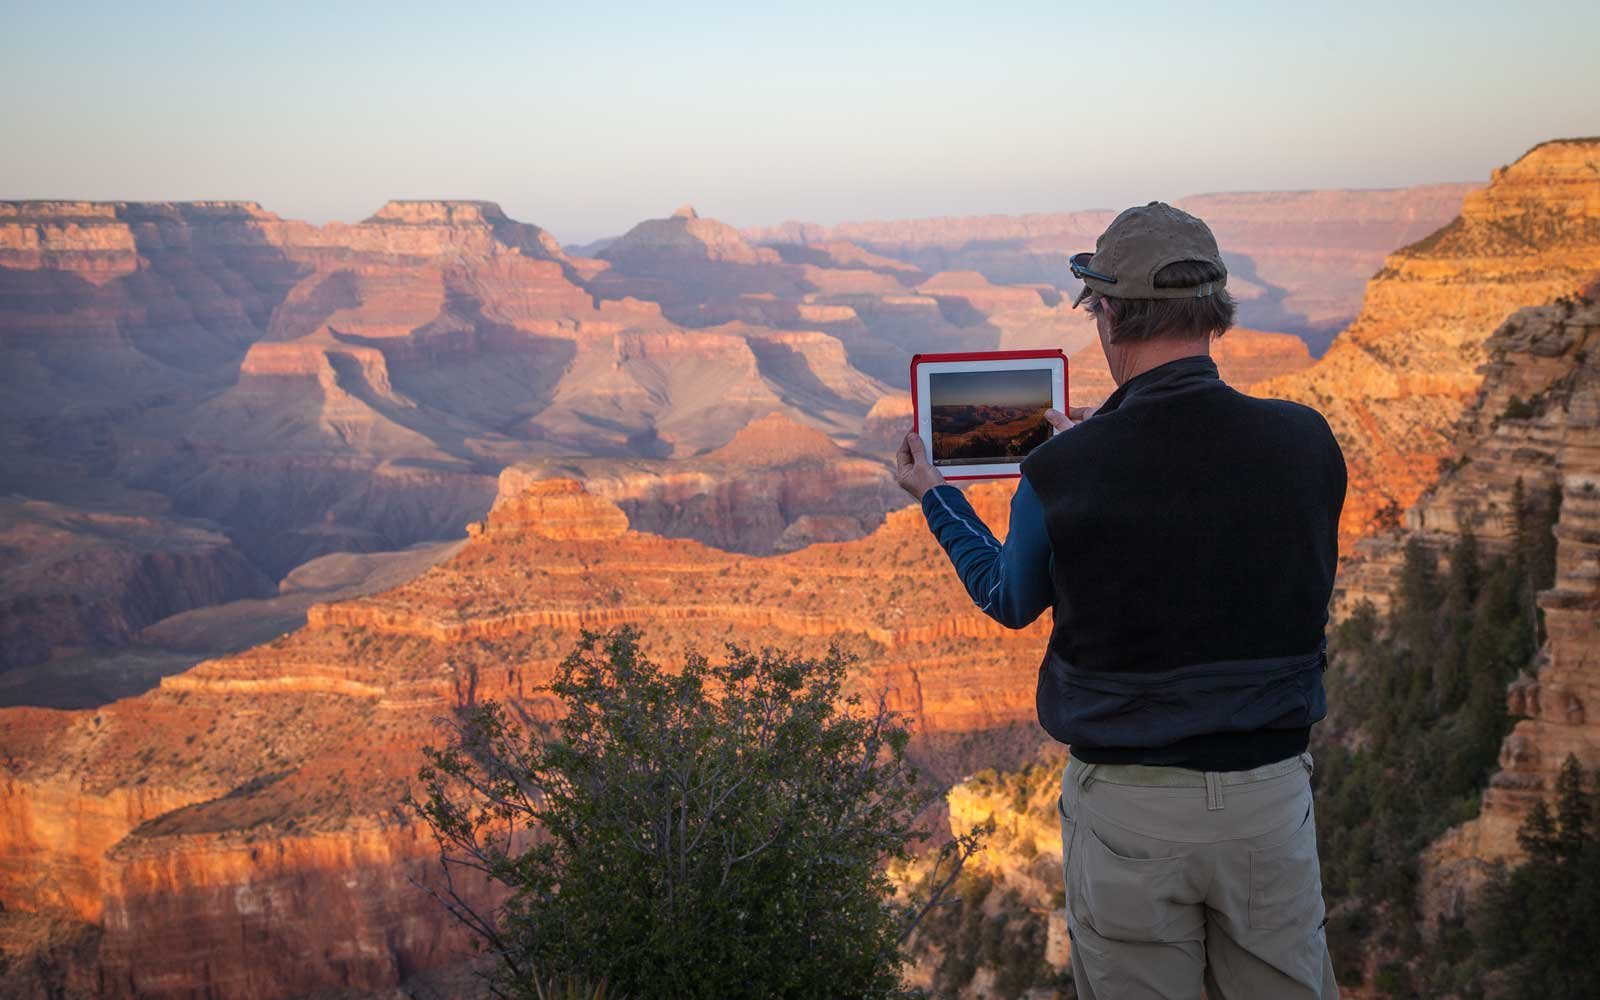 2013: New Ways of Picturing the Grand Canyon